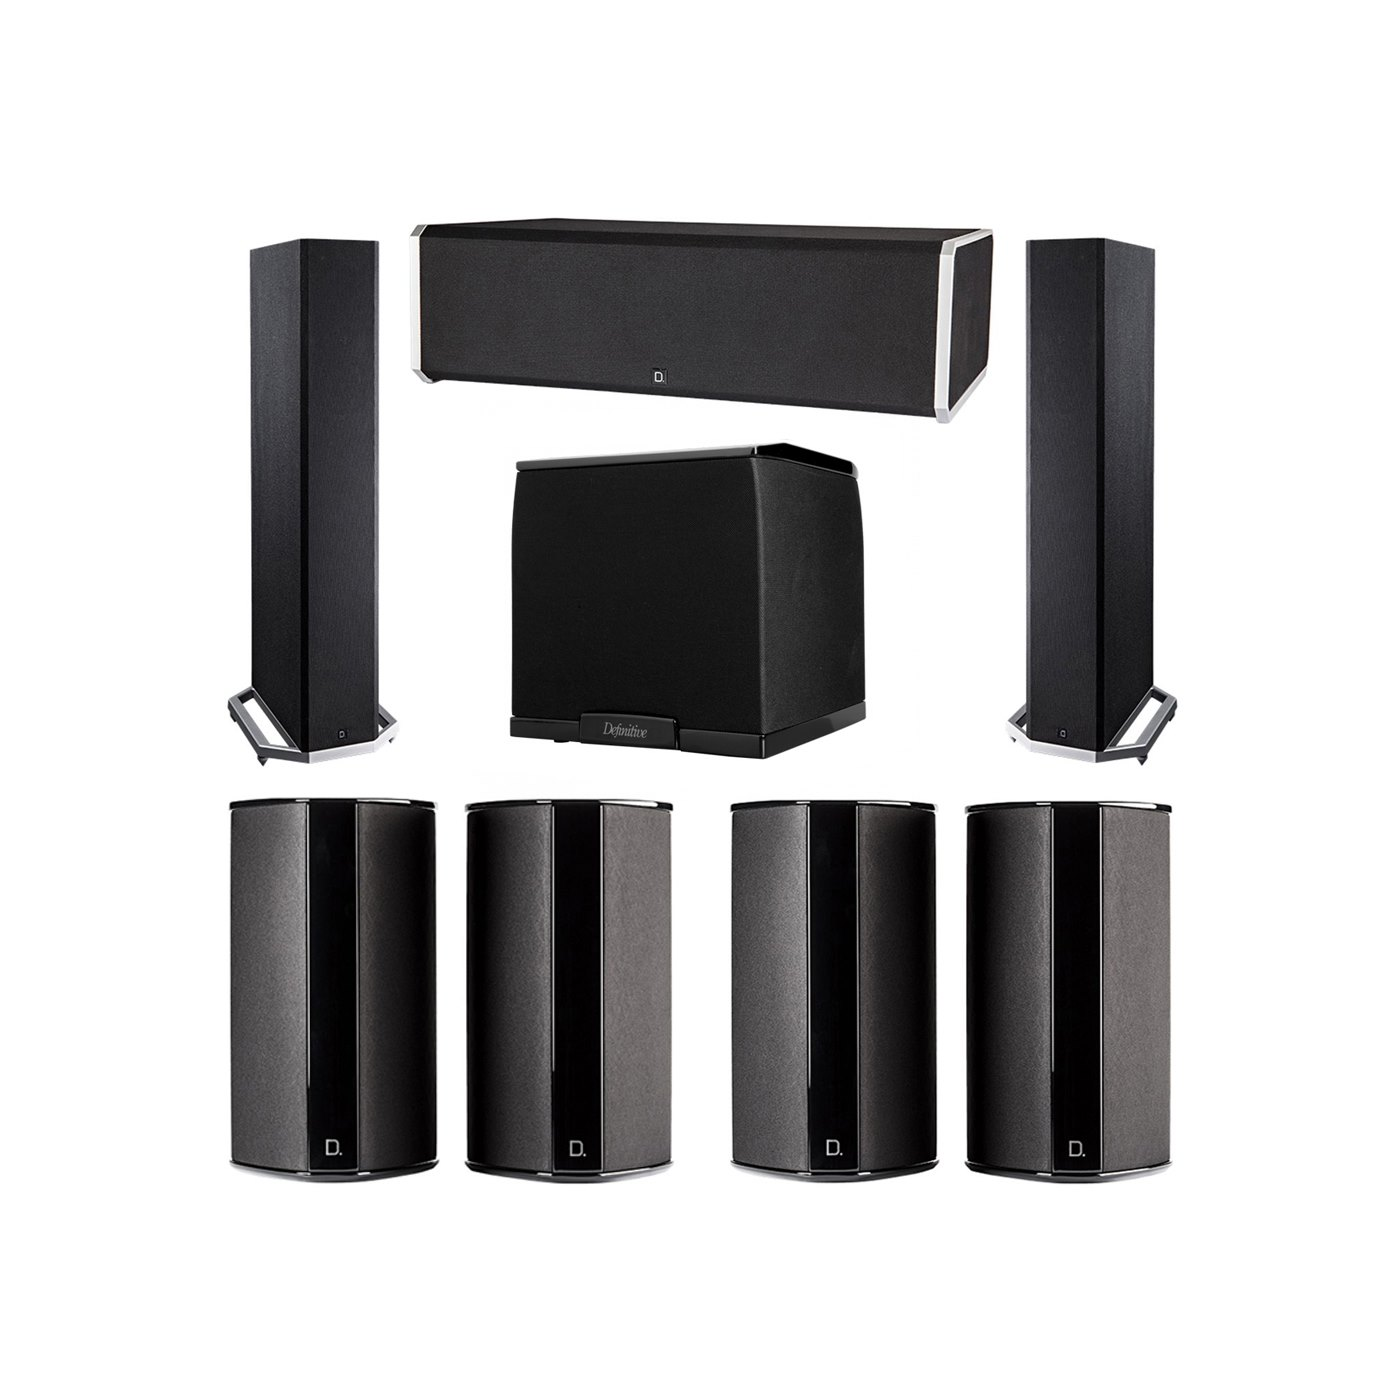 Definitive Technology 7.1 System with 2 BP9020 Tower Speakers, 1 CS9080 Center Channel Speaker, 4 SR9080 Surround Speaker, 1 Definitive Technology SuperCube 2000 Powered Subwoofer